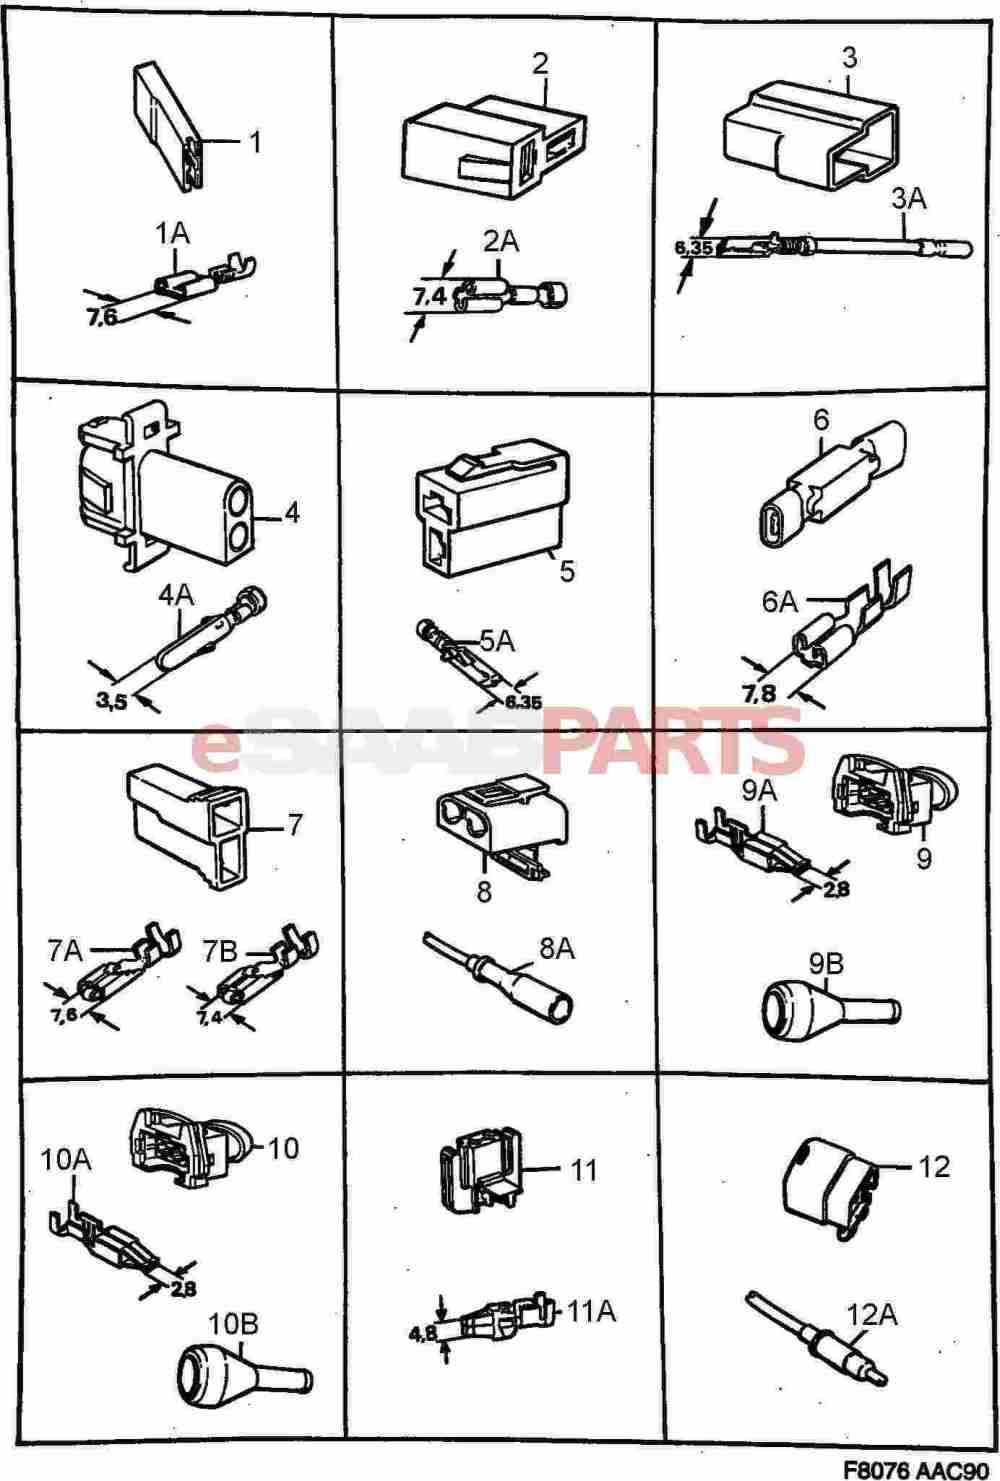 medium resolution of esaabparts com saab 900 electrical connector parts connectors all types connector housing etc